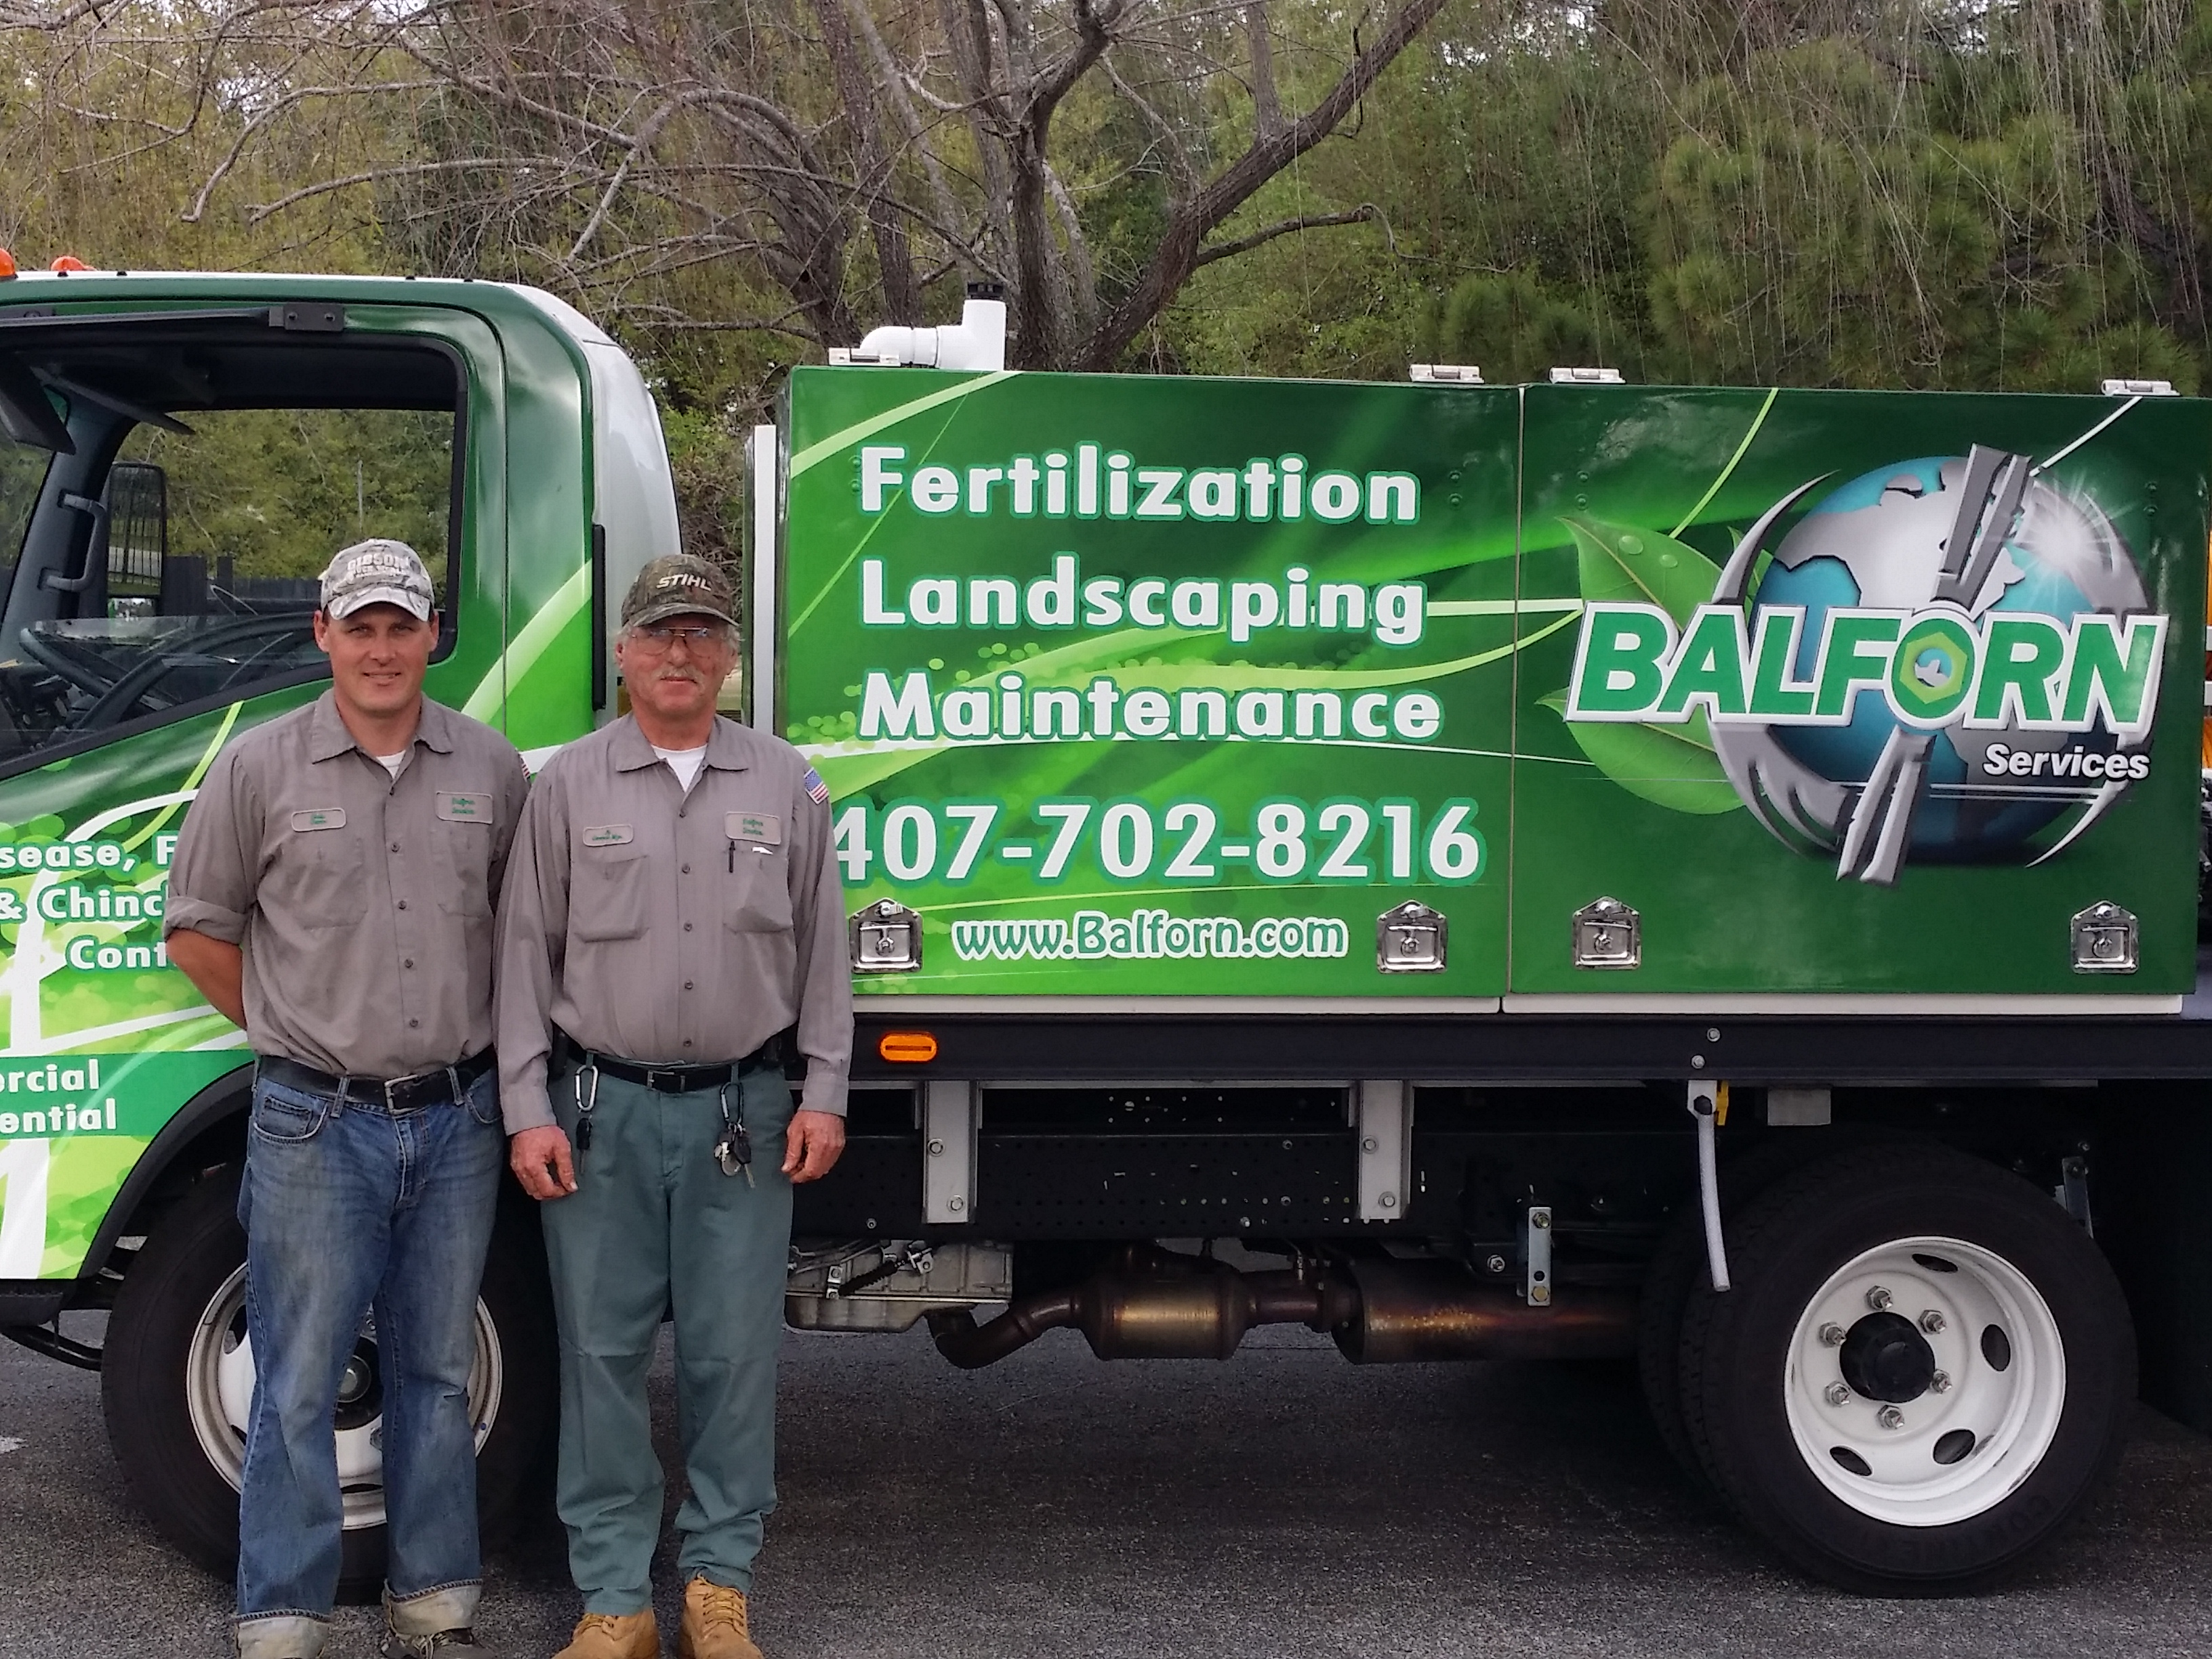 Balforn Lawn Service